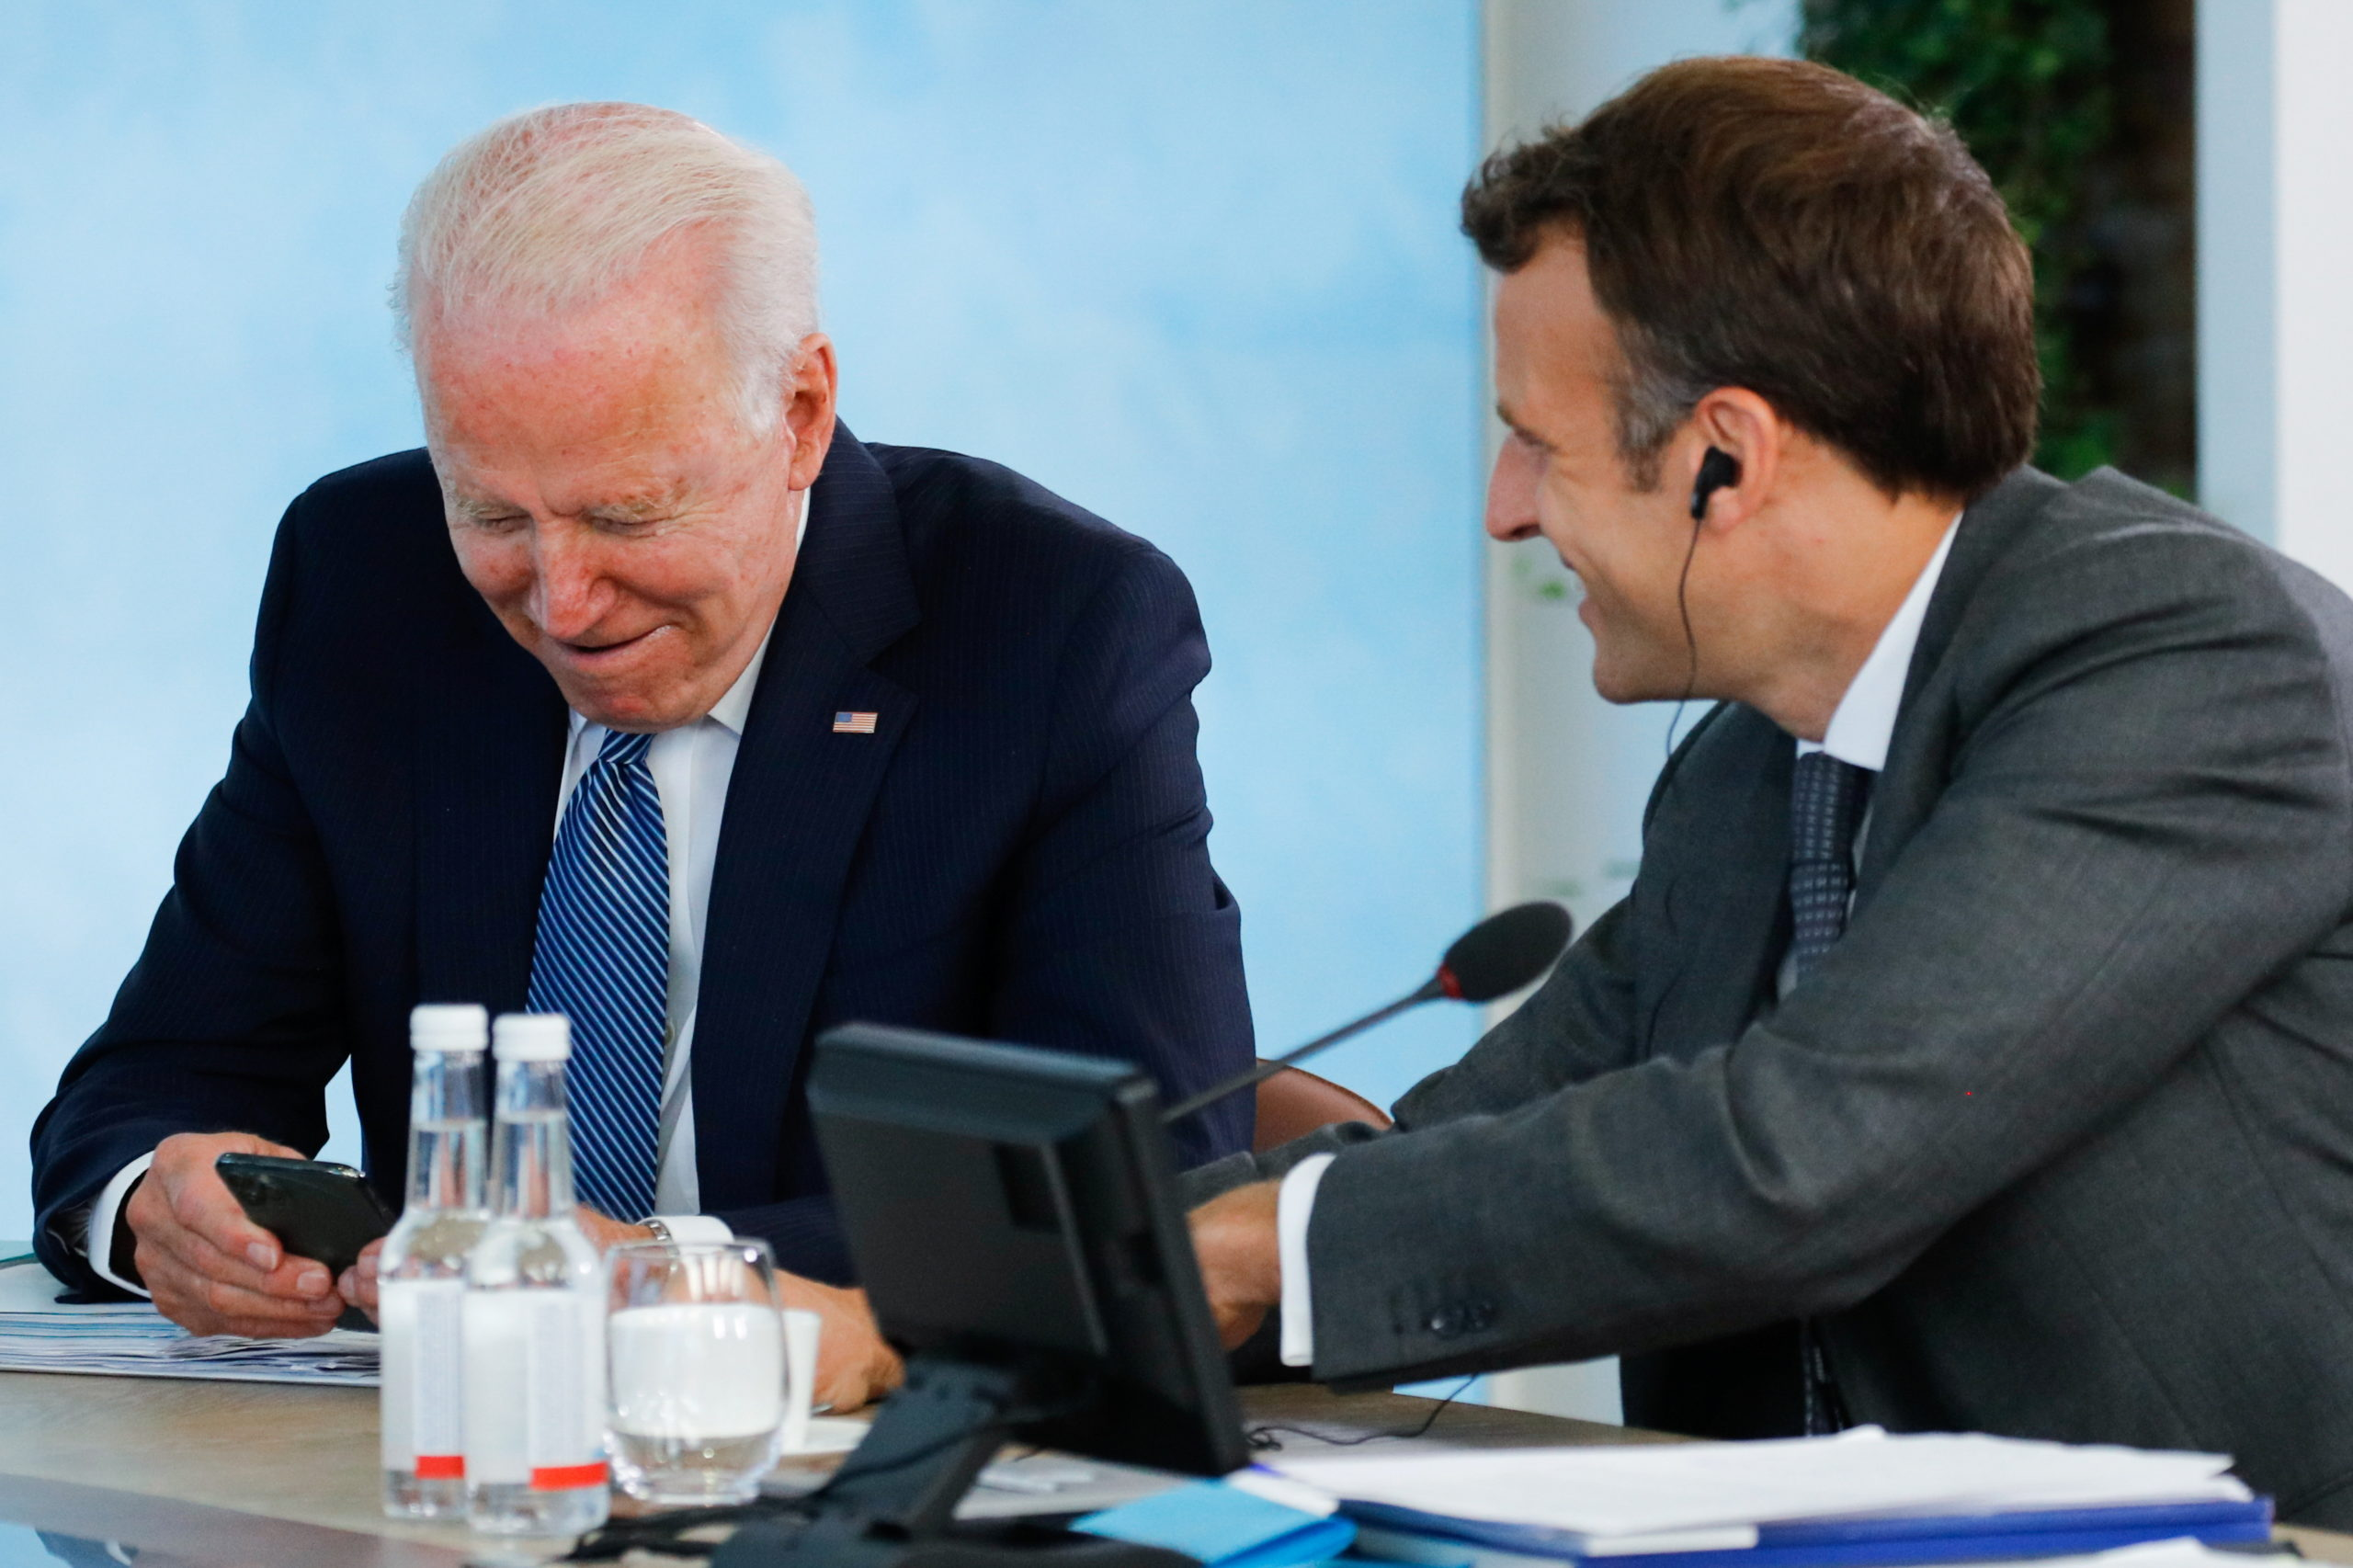 U.S. President Joe Biden and French President Emmanuel Macron attend a plenary session during G7 summit in Carbis Bay on June 13, 2021 in Cornwall, United Kingdom. (Phil Noble - WPA Pool/Getty Images)